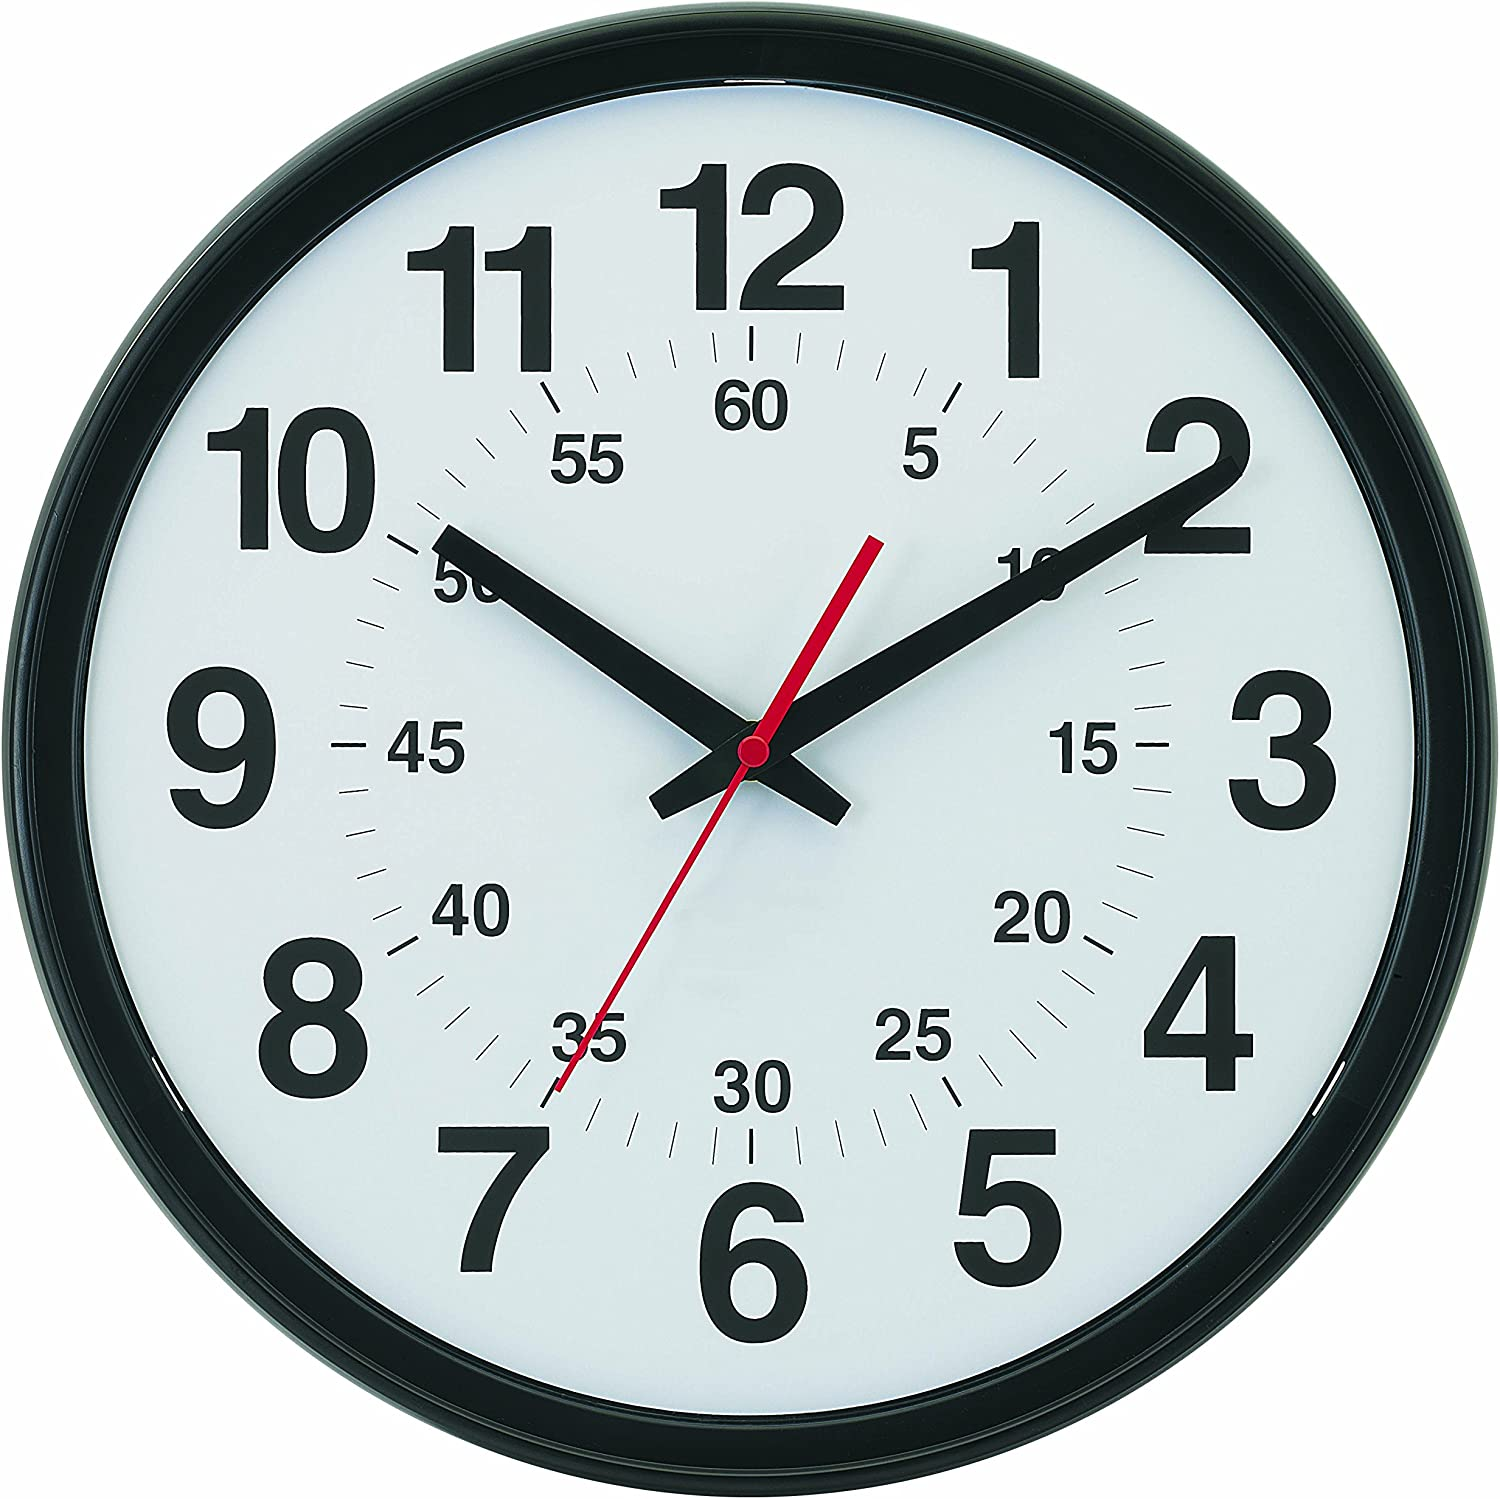 """Tempus Wide Profile Wall Clock with Minute-Minder Dial and Daylight Saving Time Auto-Adjust Movement, 13.75"""", Black"""